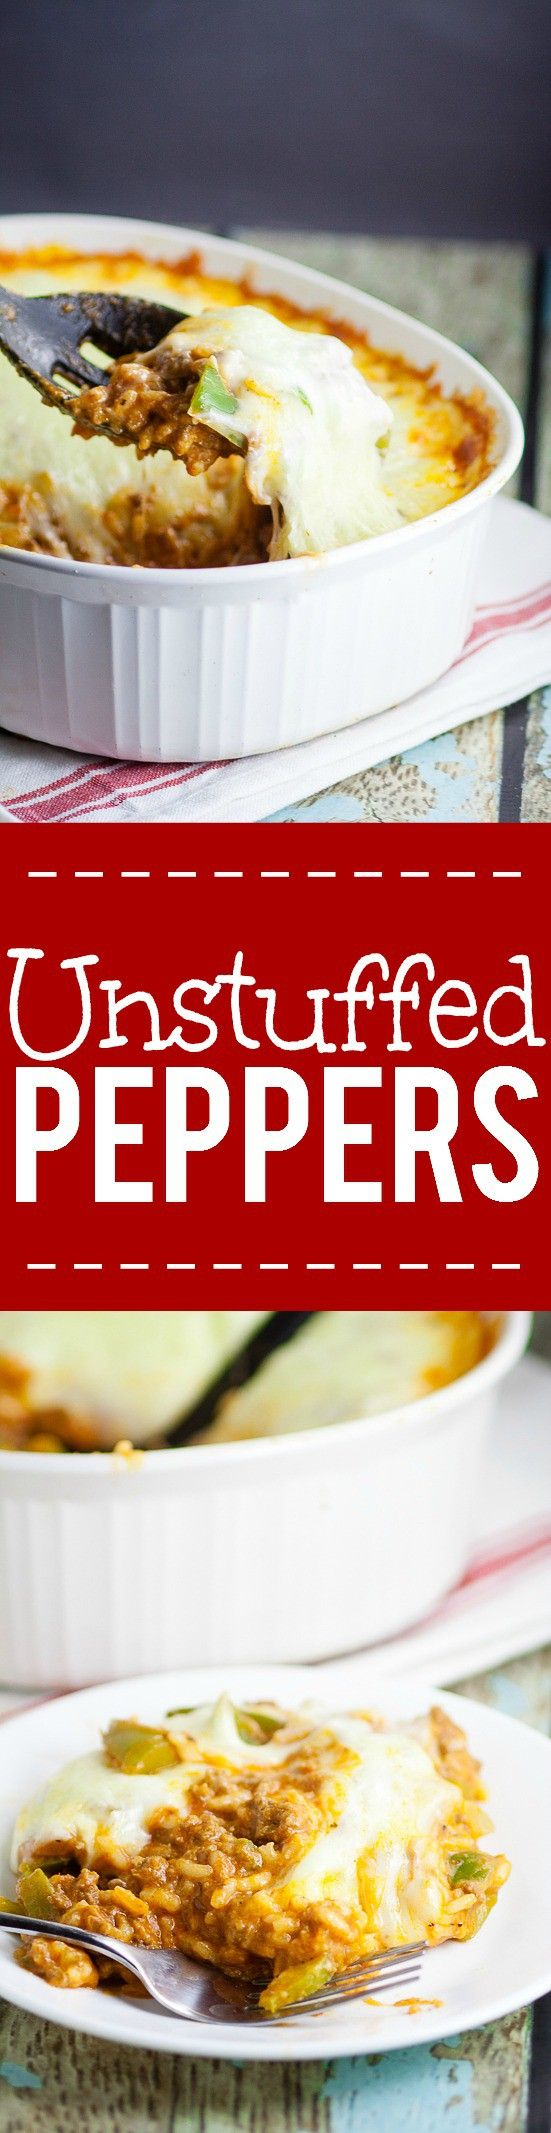 Unstuffed peppers recipe - Quick and easy, 30 minute, one pot dinner recipe…